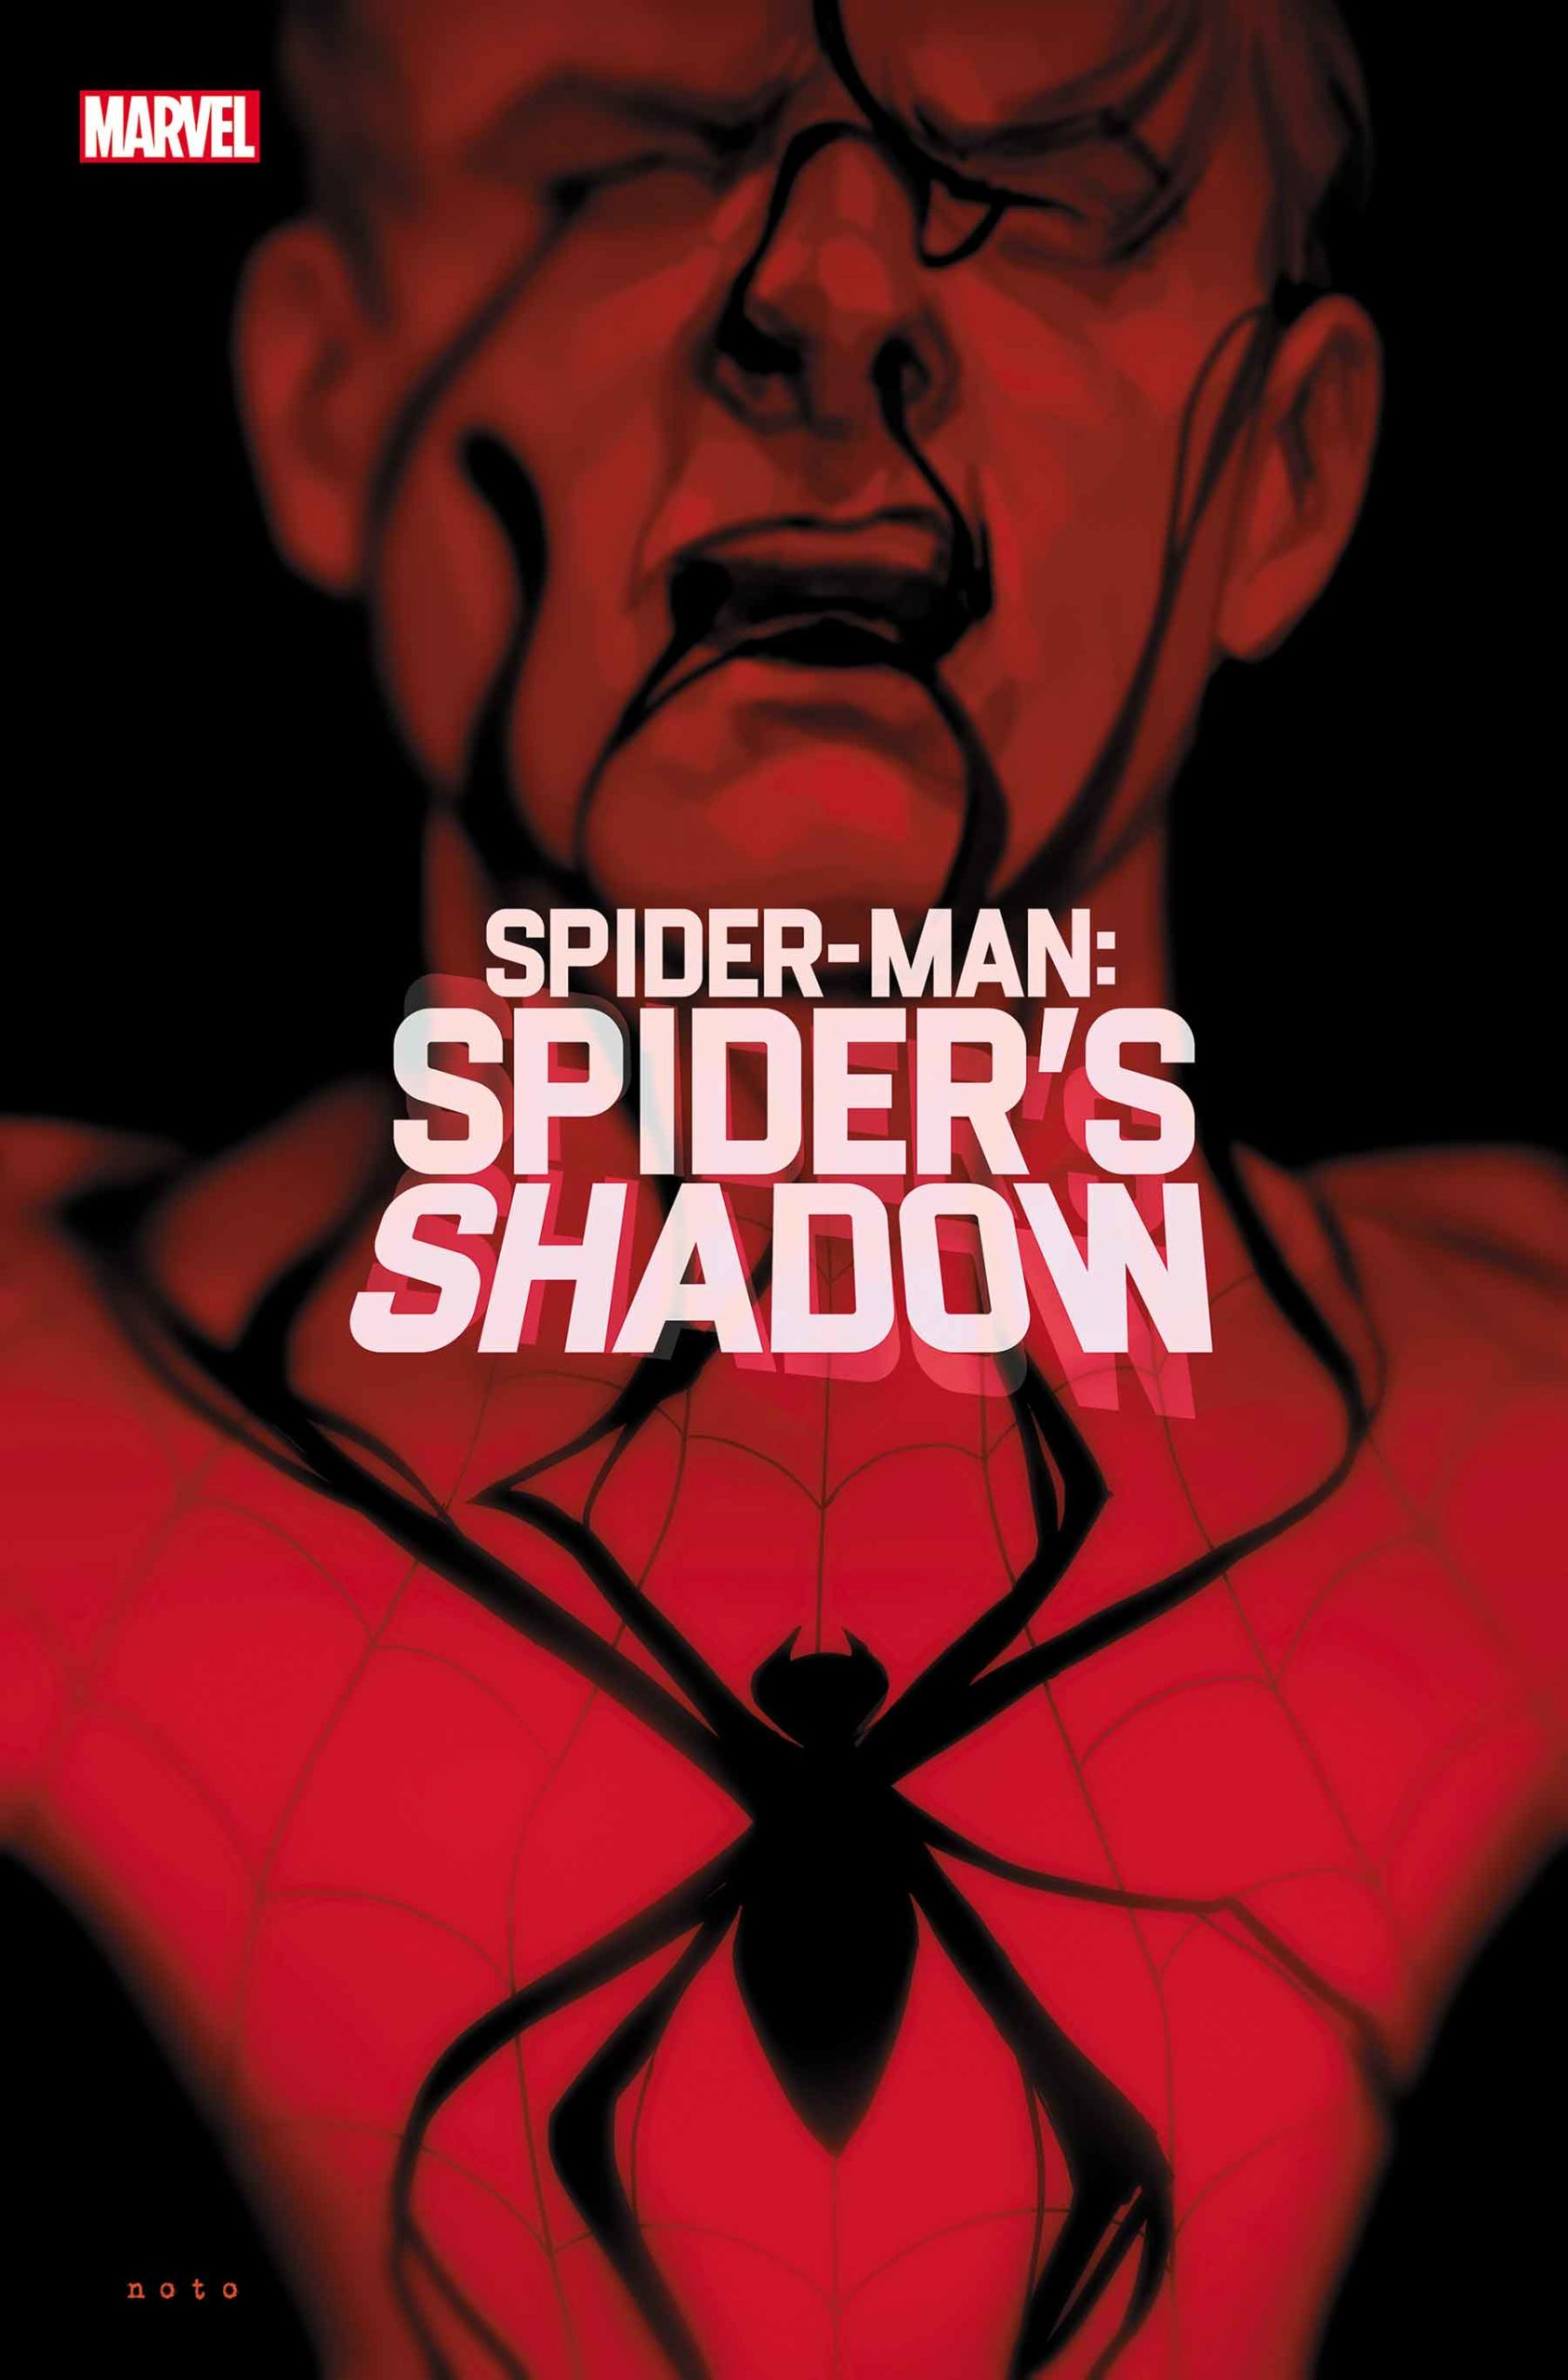 Spider-Man: Spider's Shadow